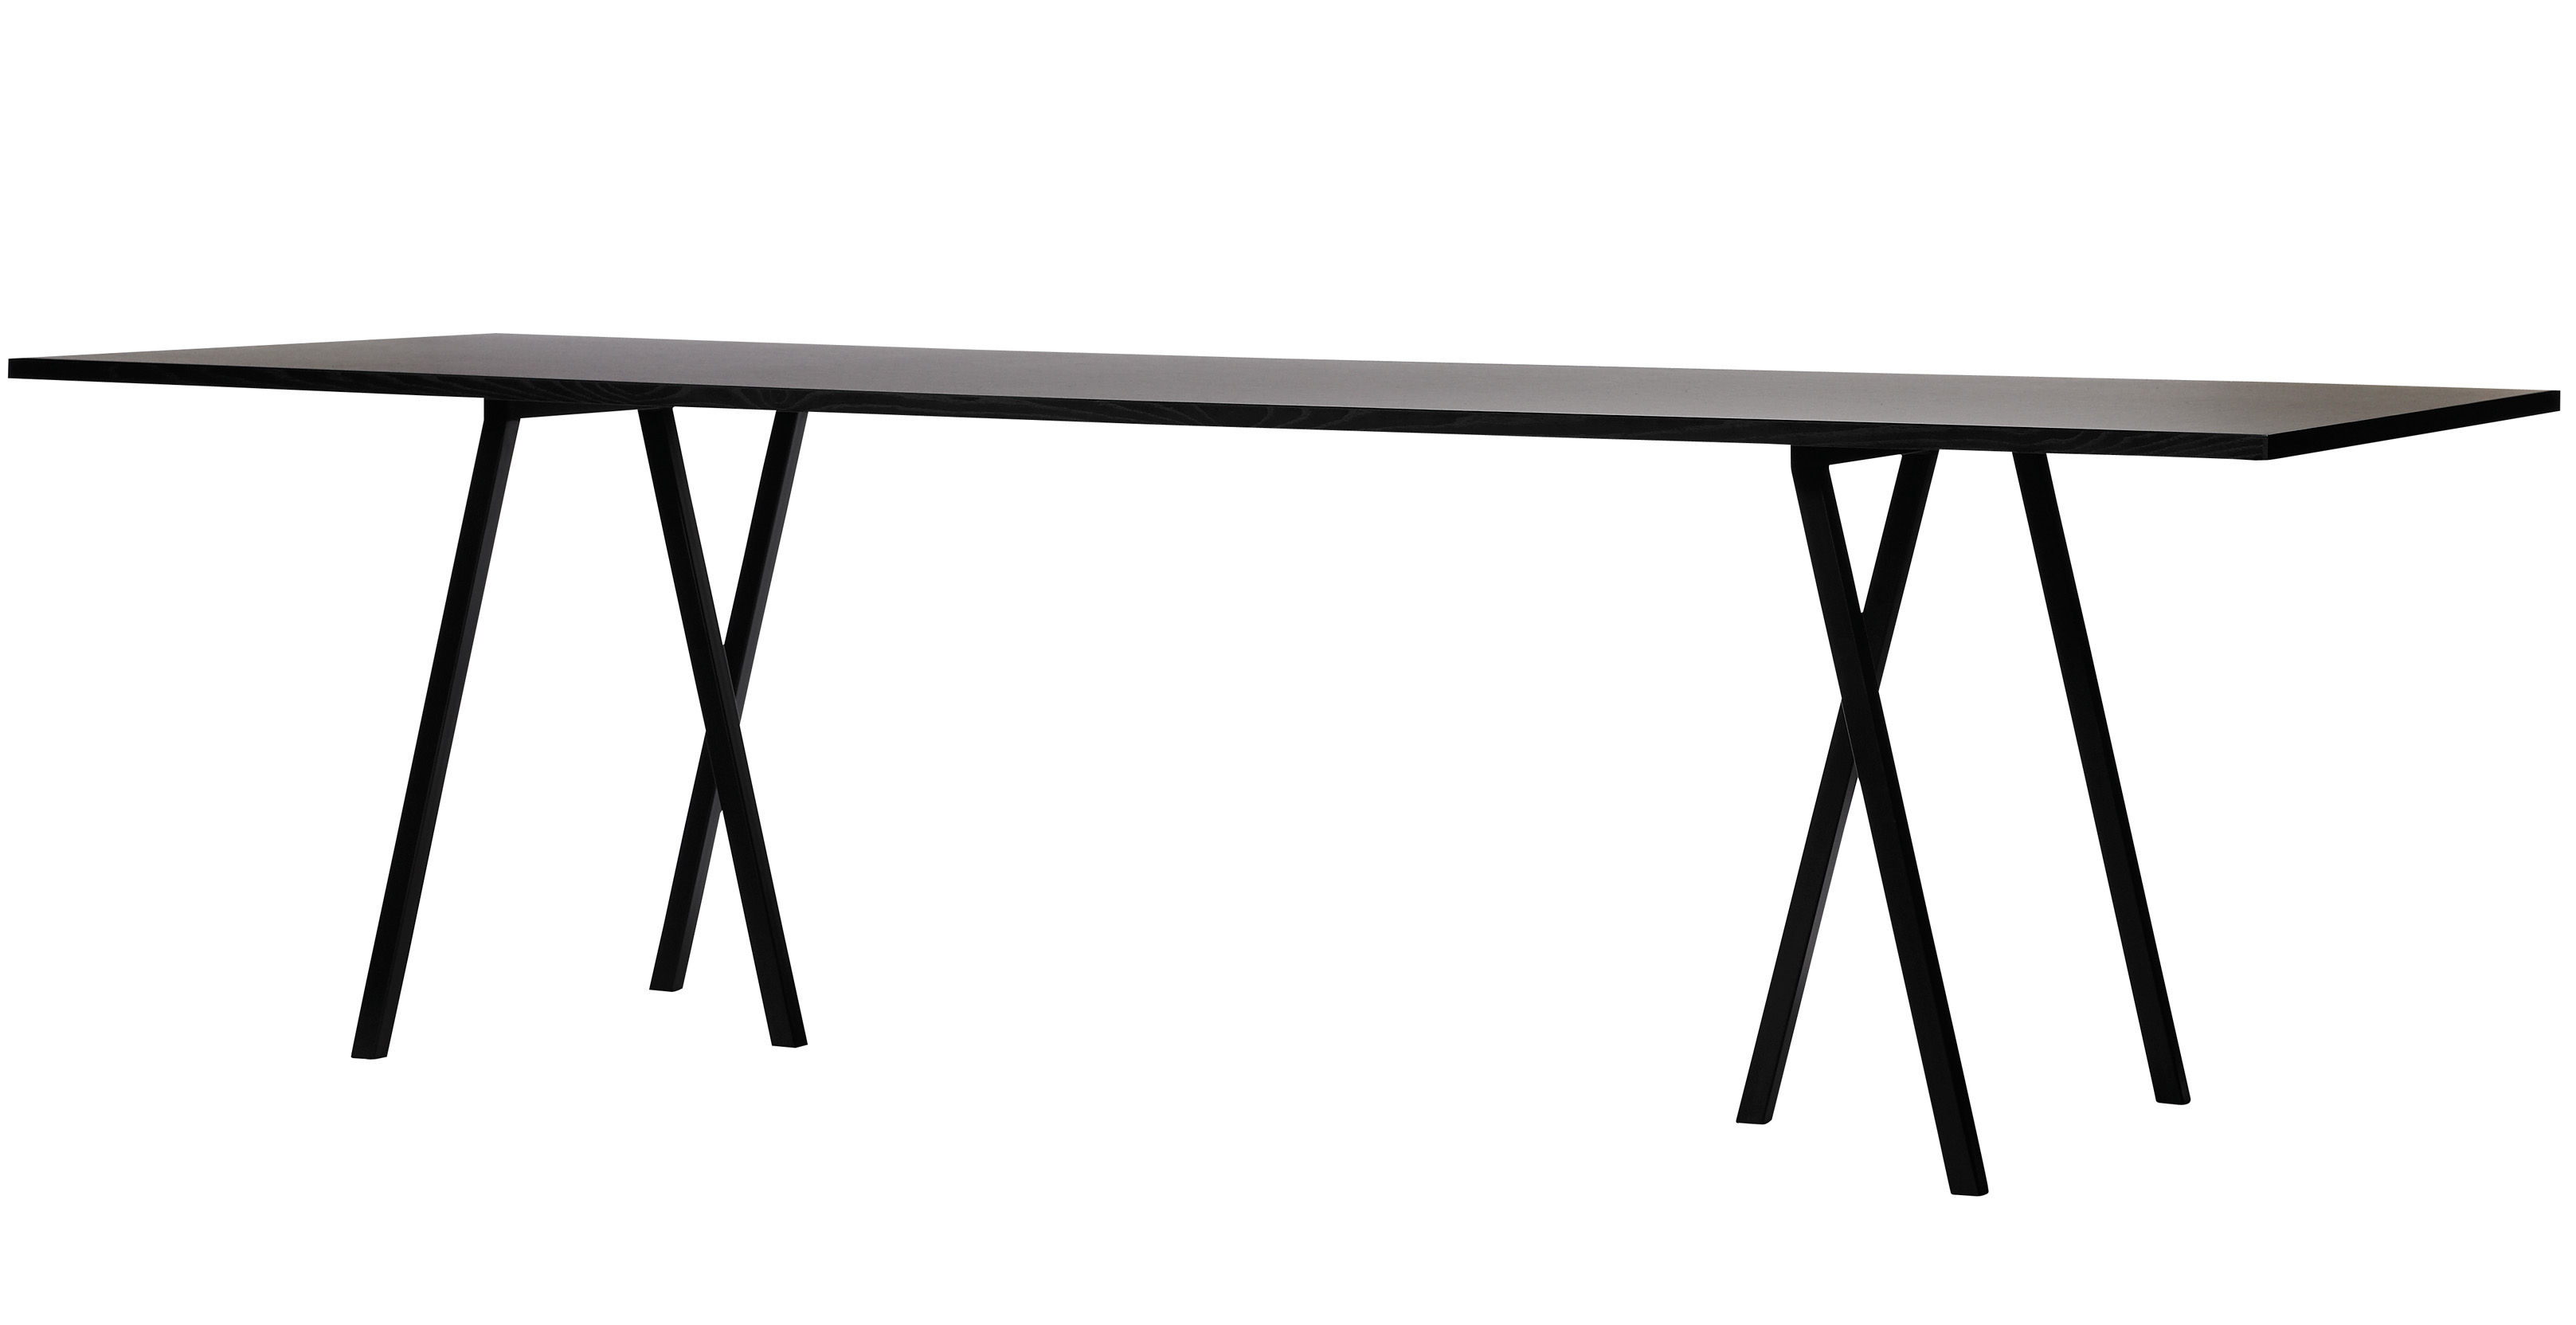 Back to school - Must-Have - Loop Table - L 180 cm by Hay - L 180 cm - Black - Lacquered steel